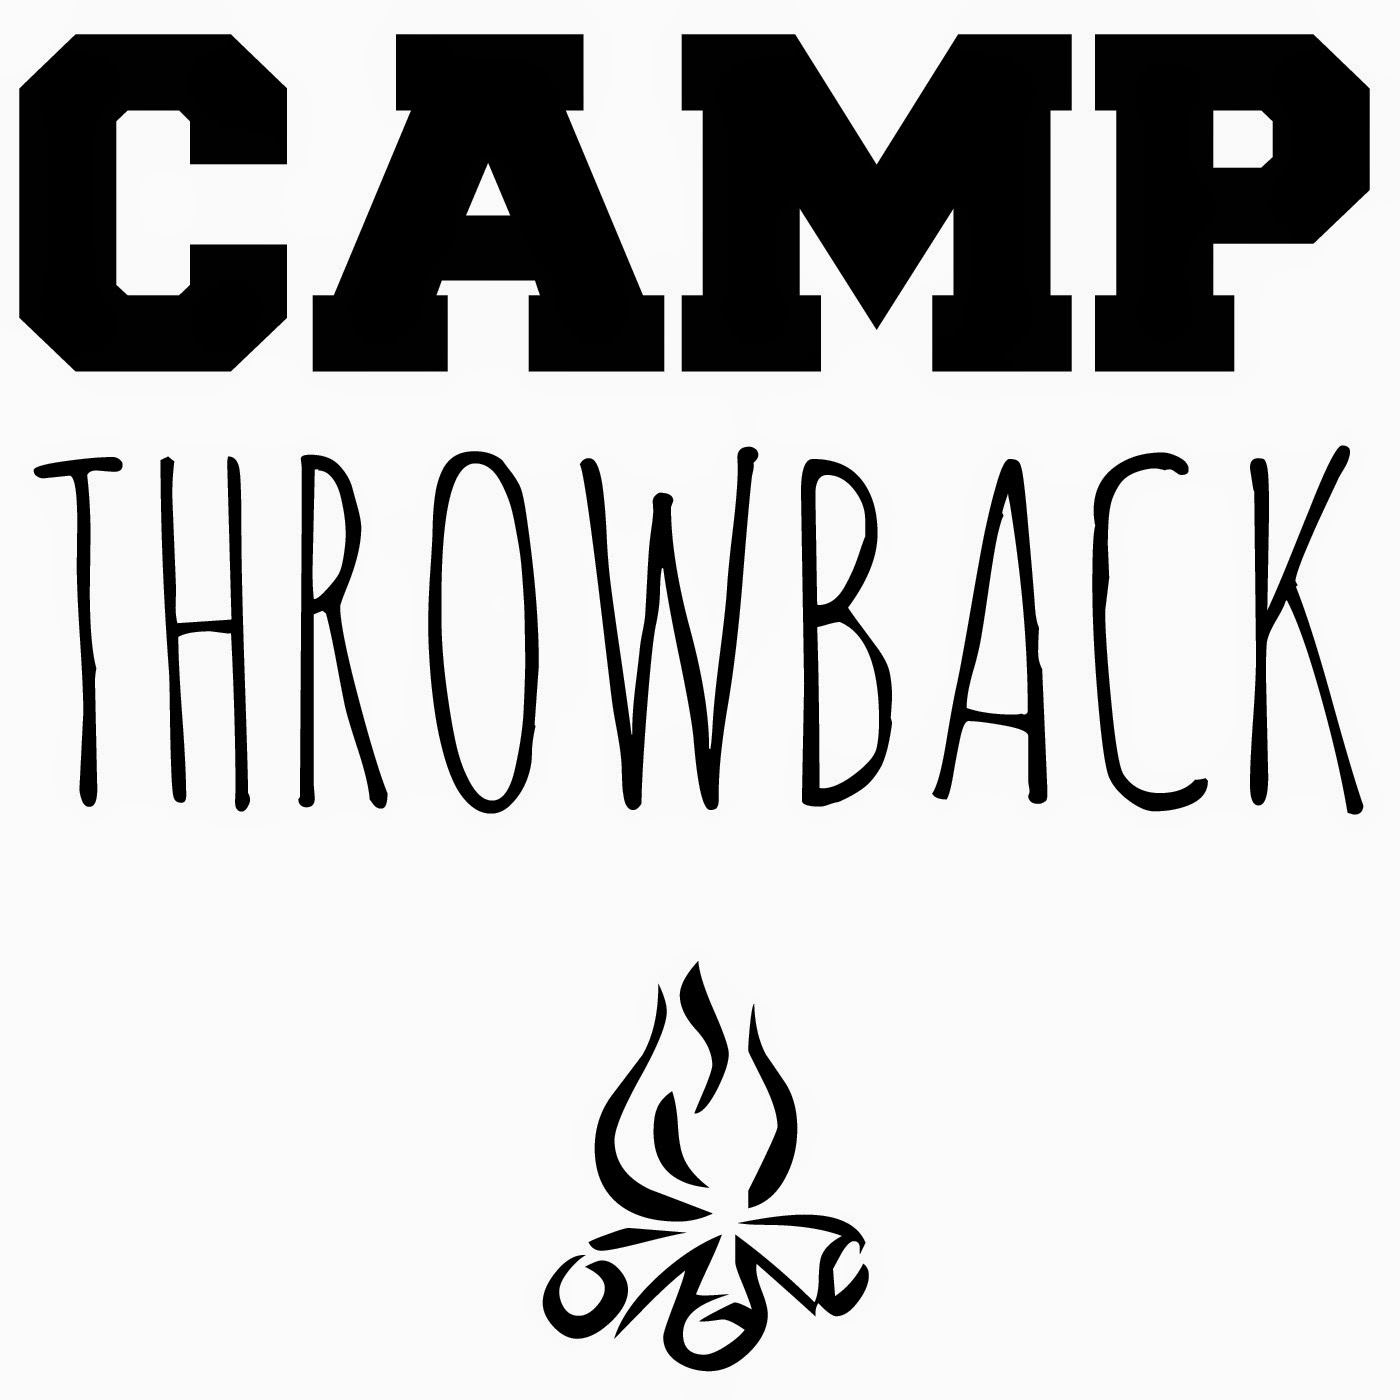 http://brittanyherself.com/2013/10/15/camp-throwback-2014/